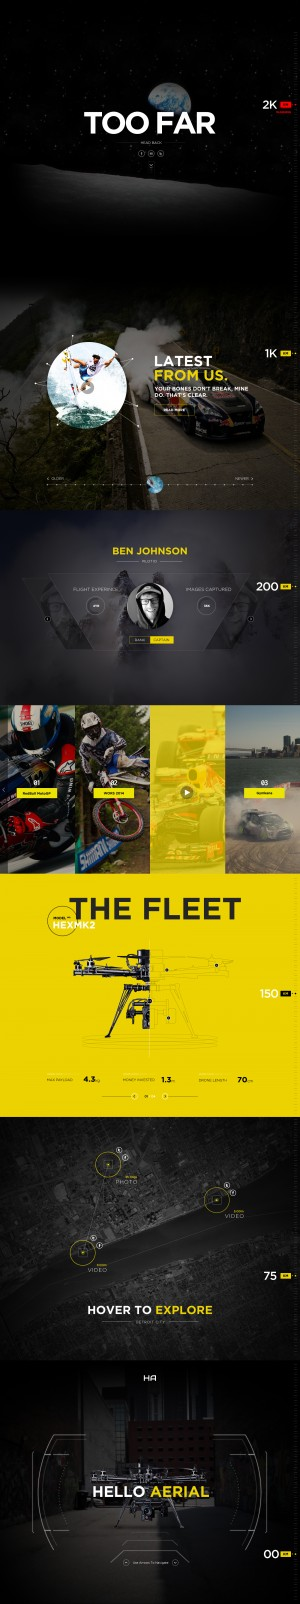 Drone Life – Web design Inspiration by Nick Ano